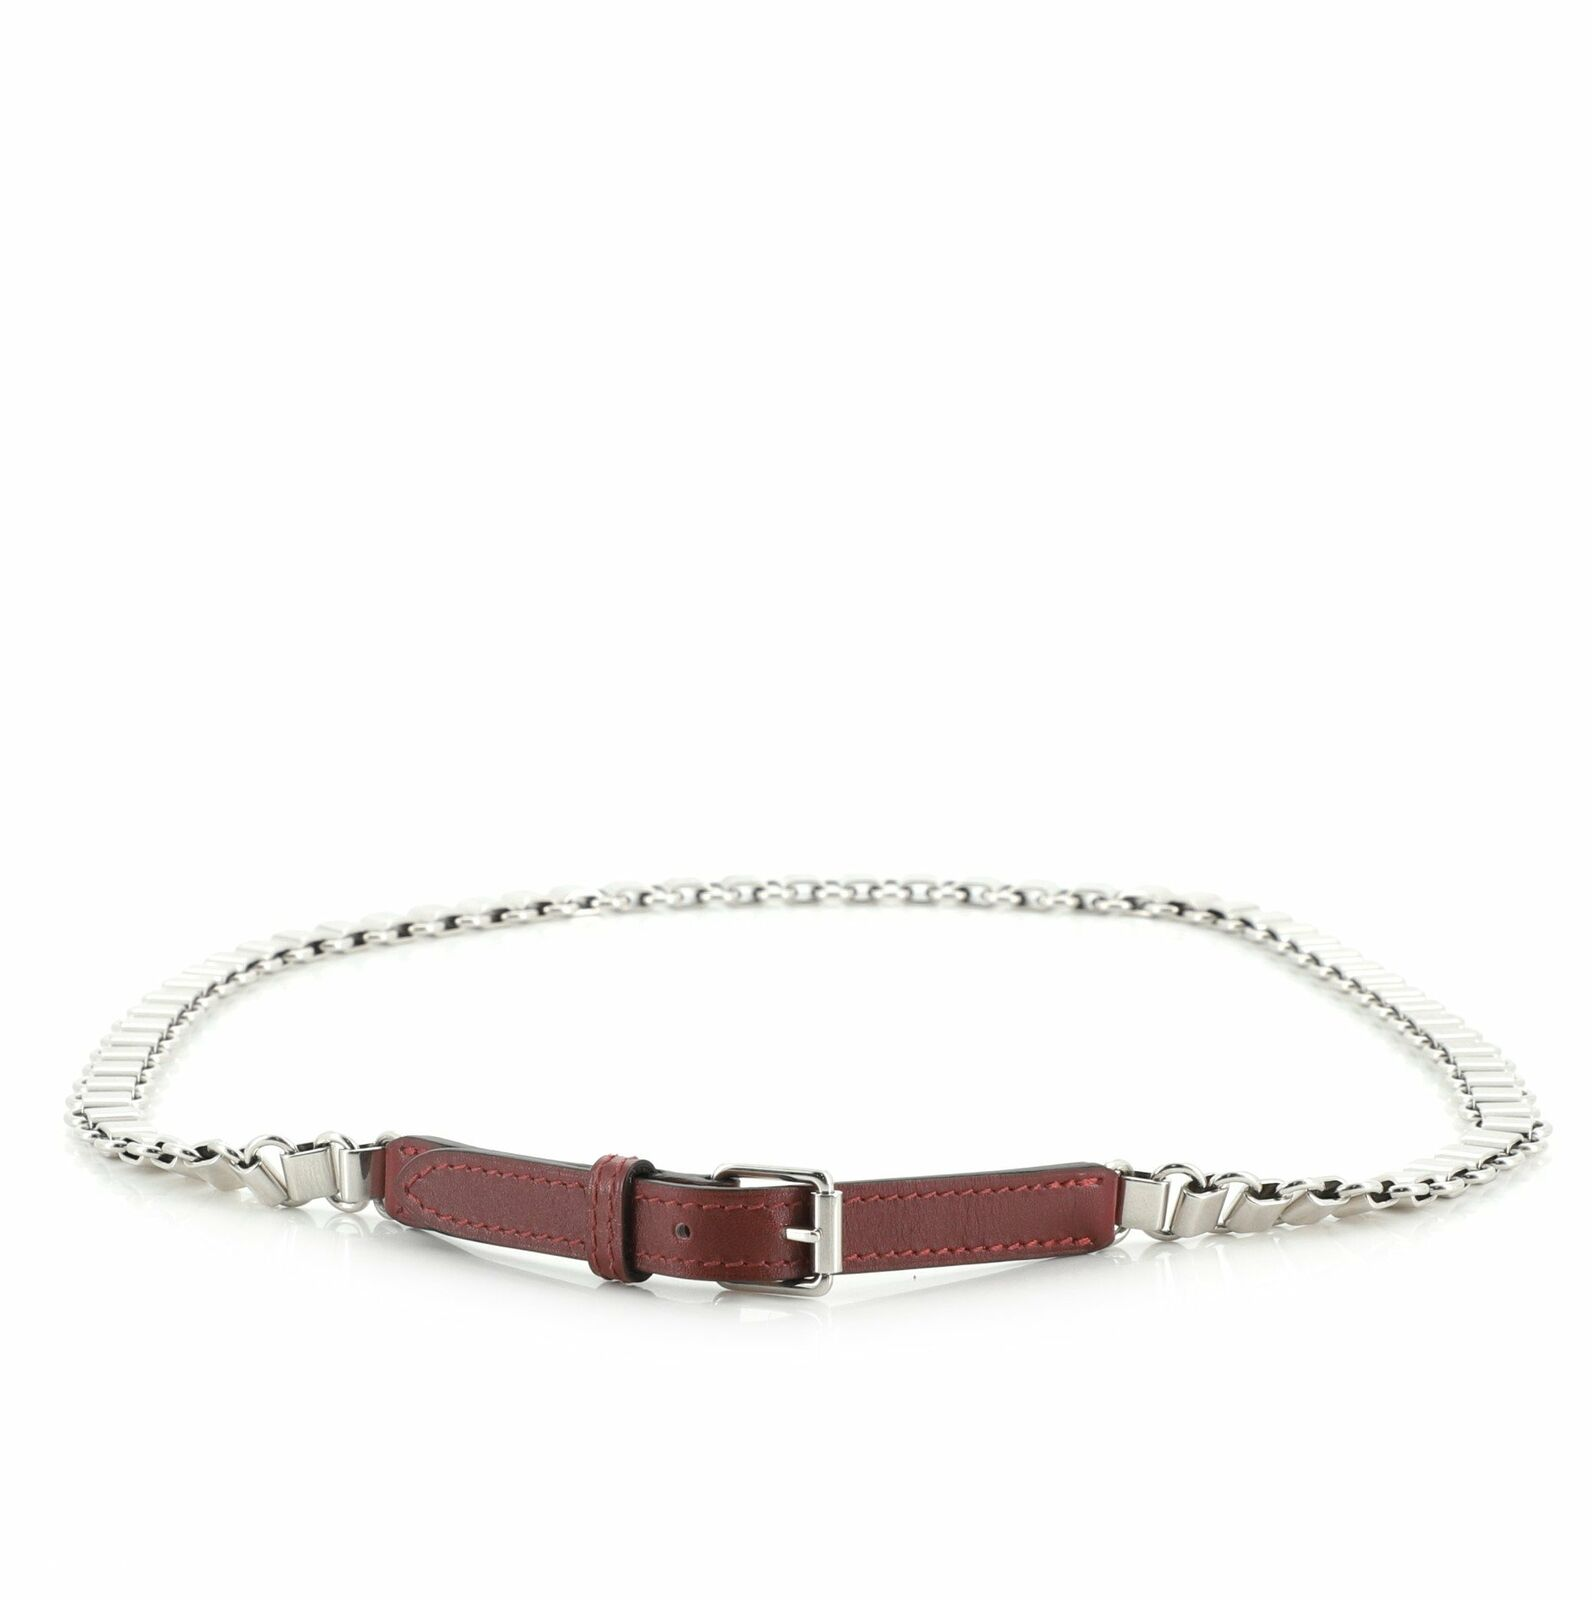 Hermes Chain Link Belt Metal with Leather 80